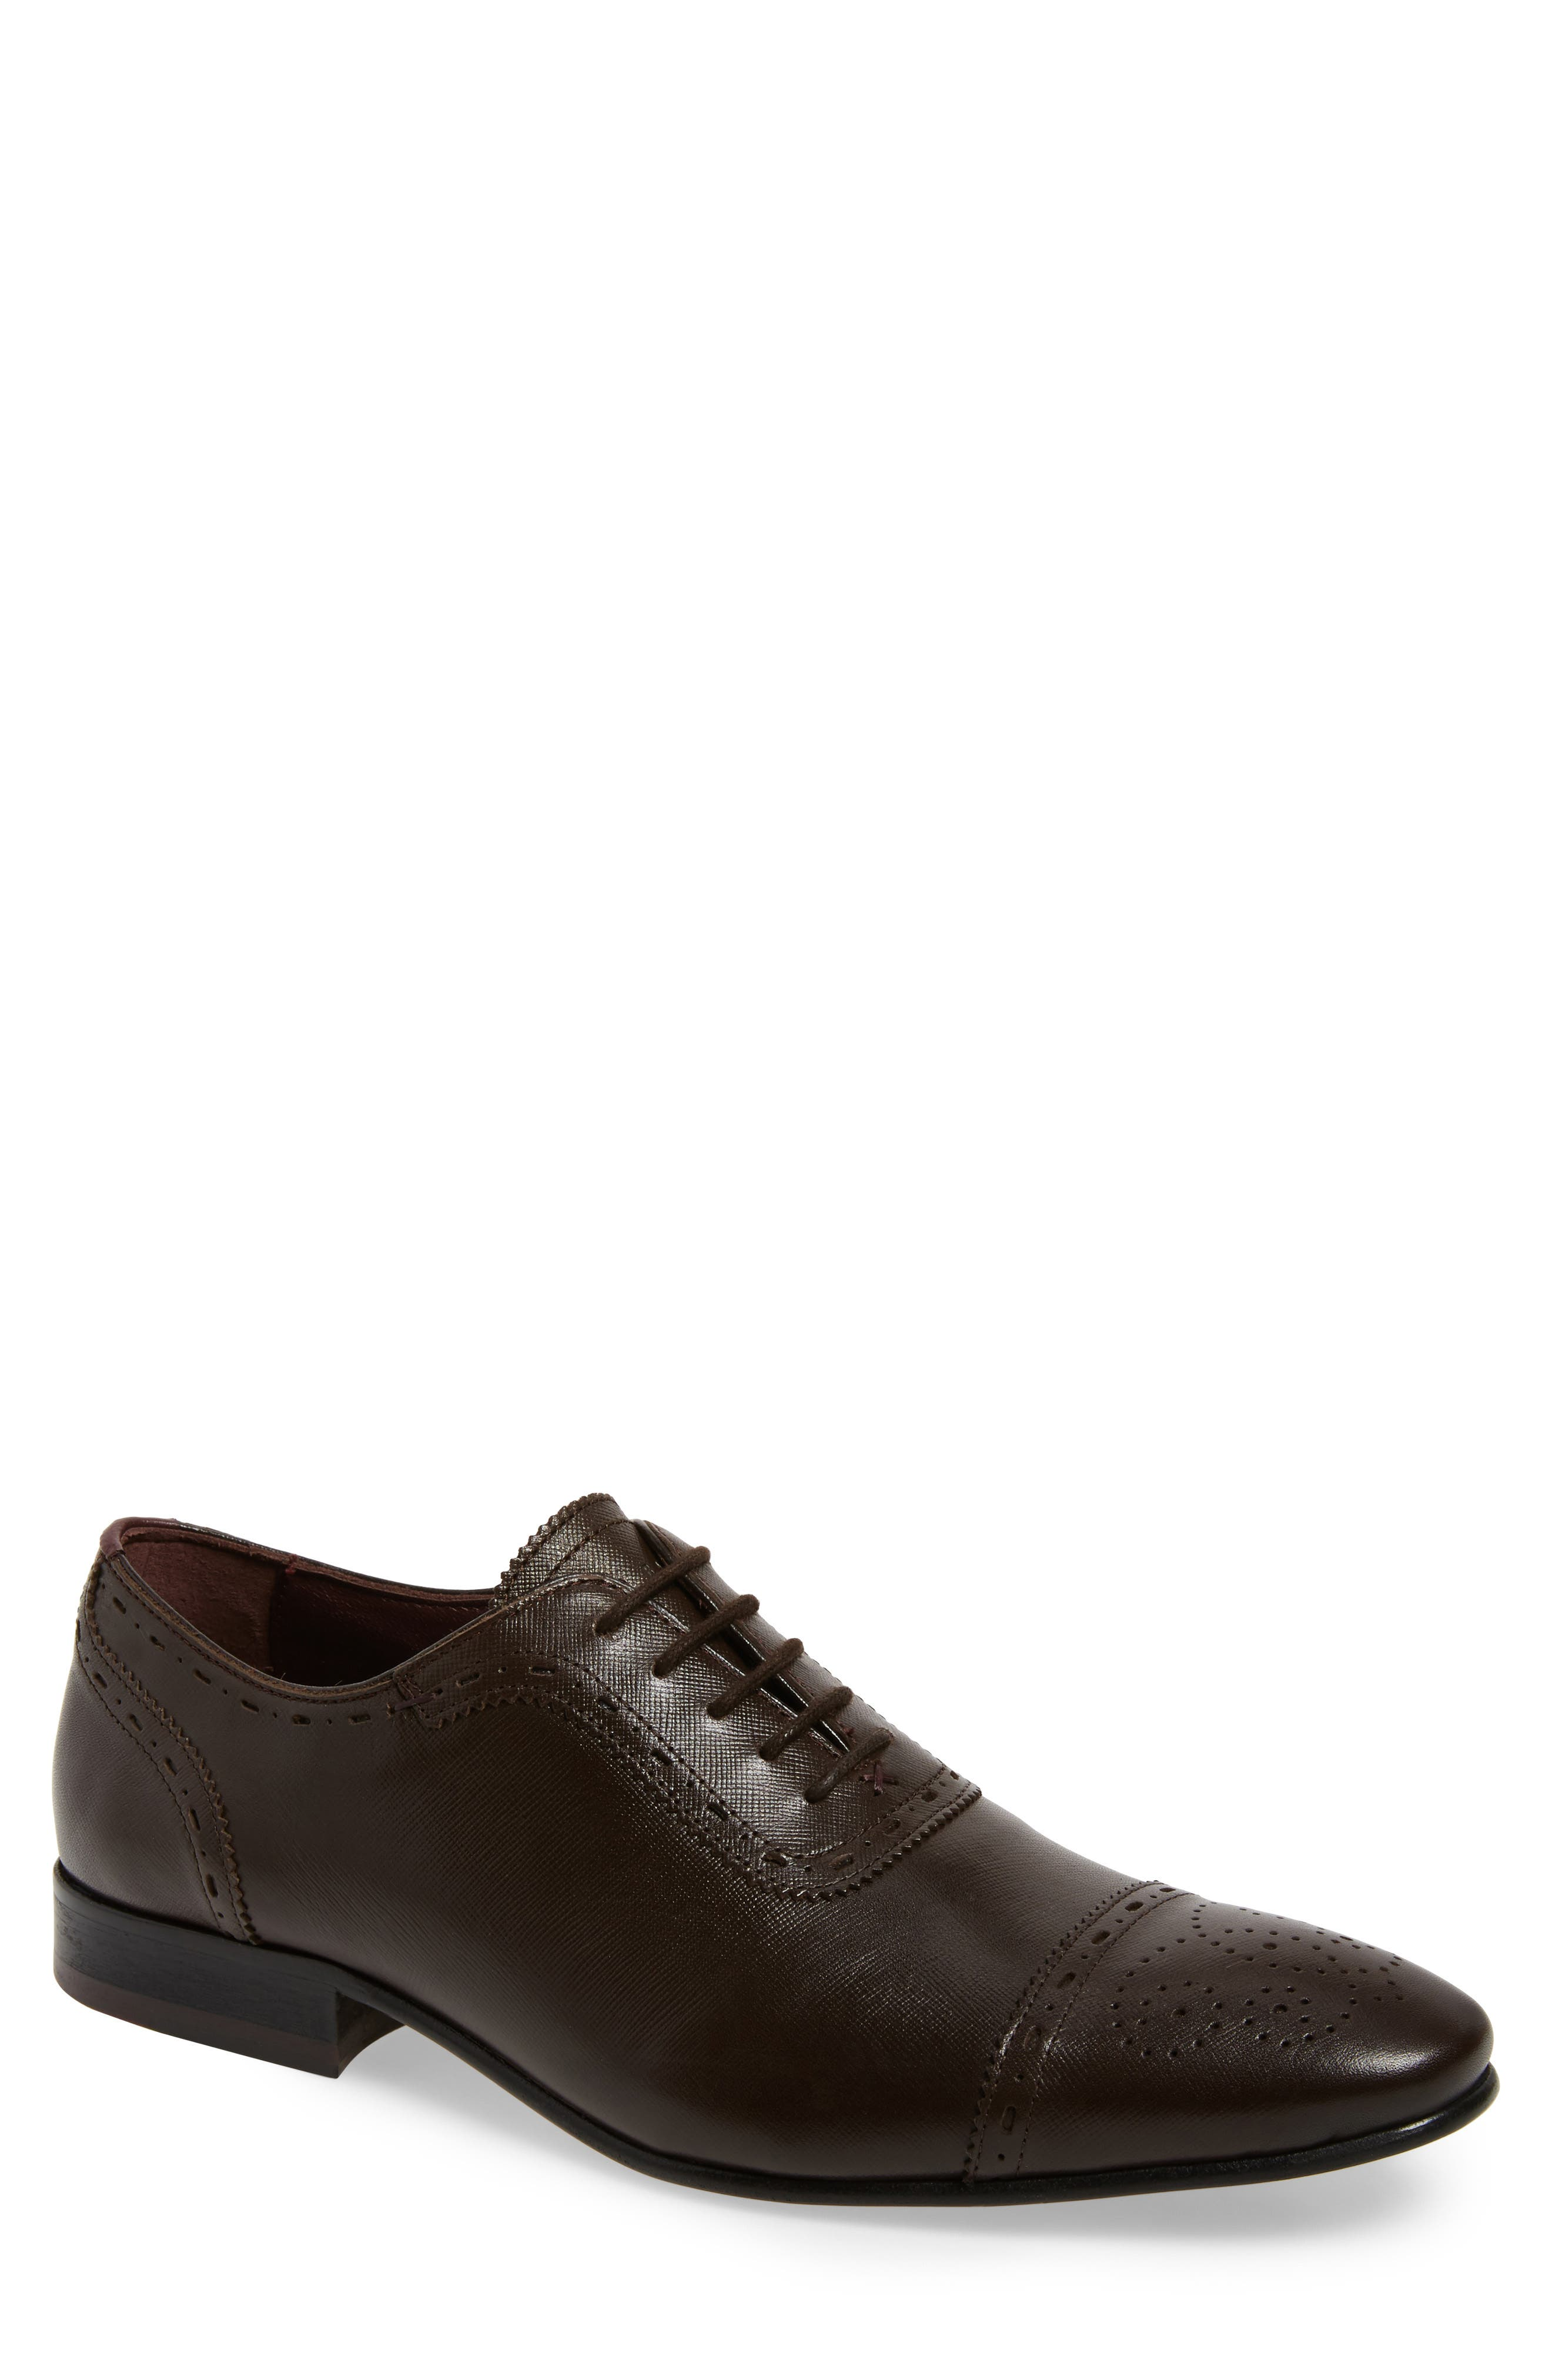 Alternate Image 1 Selected - Ted Baker London Barliy Cap Toe Oxford (Men)